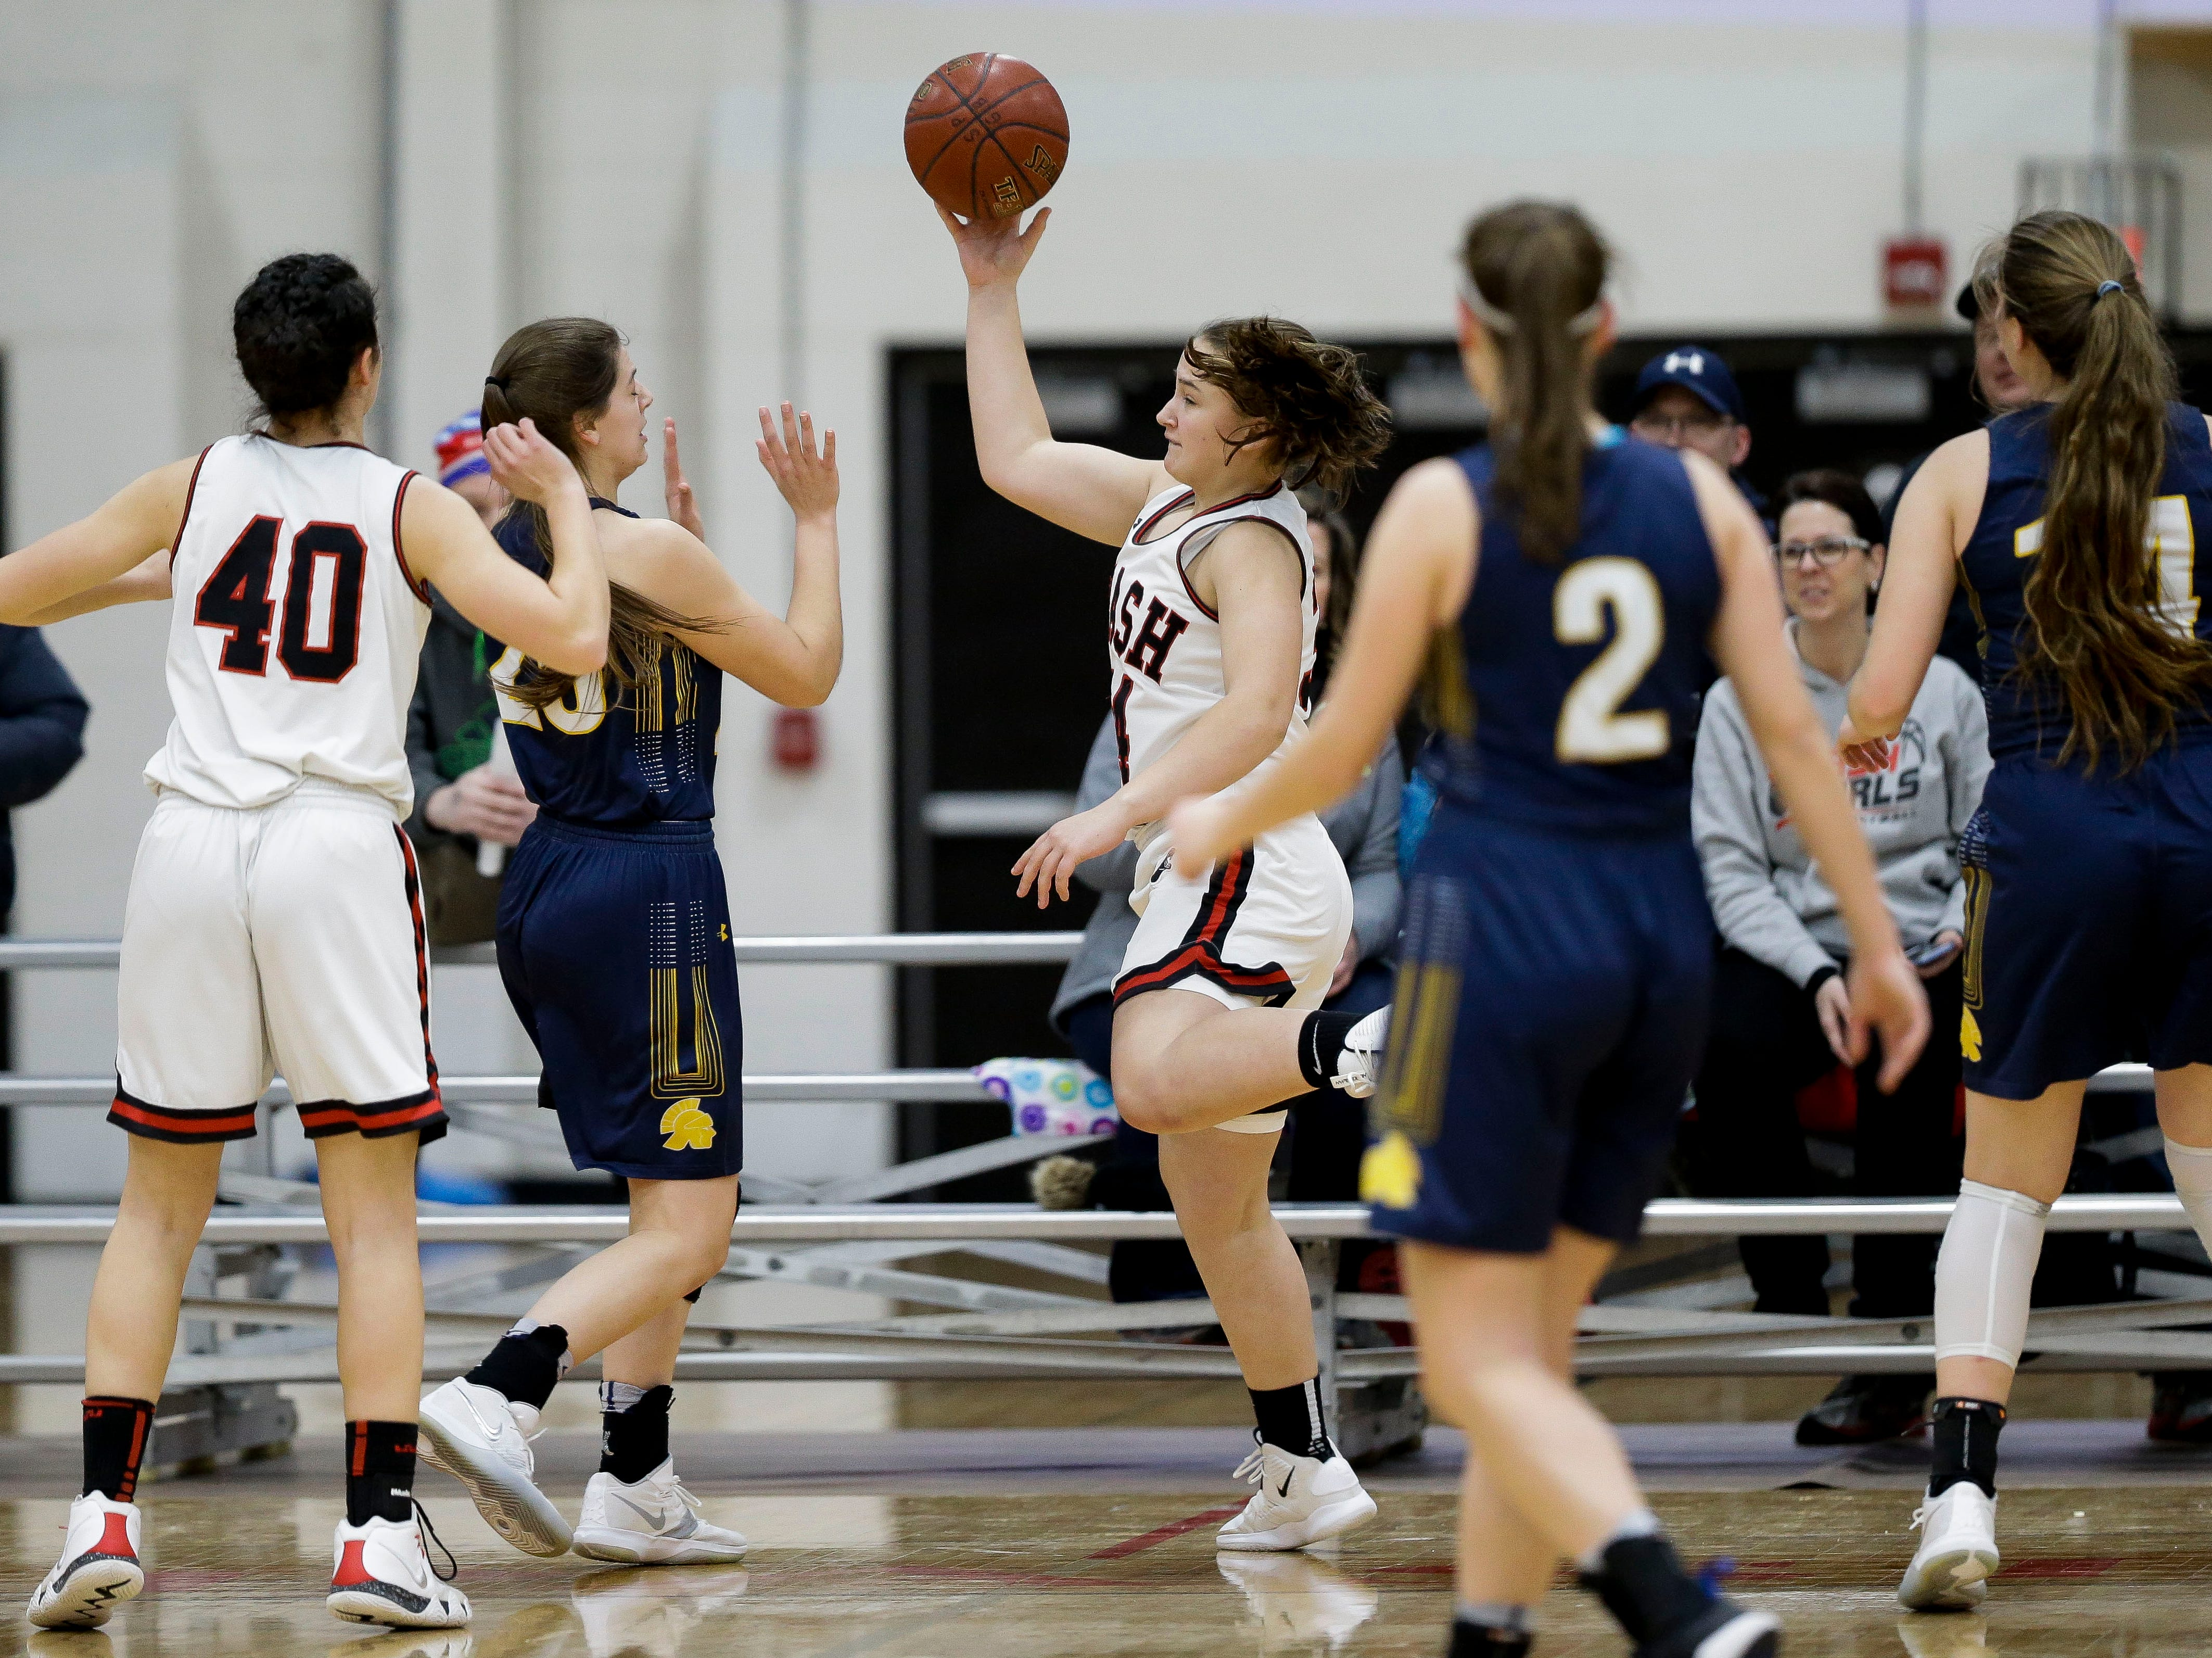 SPASH's Zoe Fink (34) saves a loose ball along the baseline against Wausau West on Thursday, February 14, 2019, at SPASH in Stevens Point, Wis.Tork Mason/USA TODAY NETWORK-Wisconsin